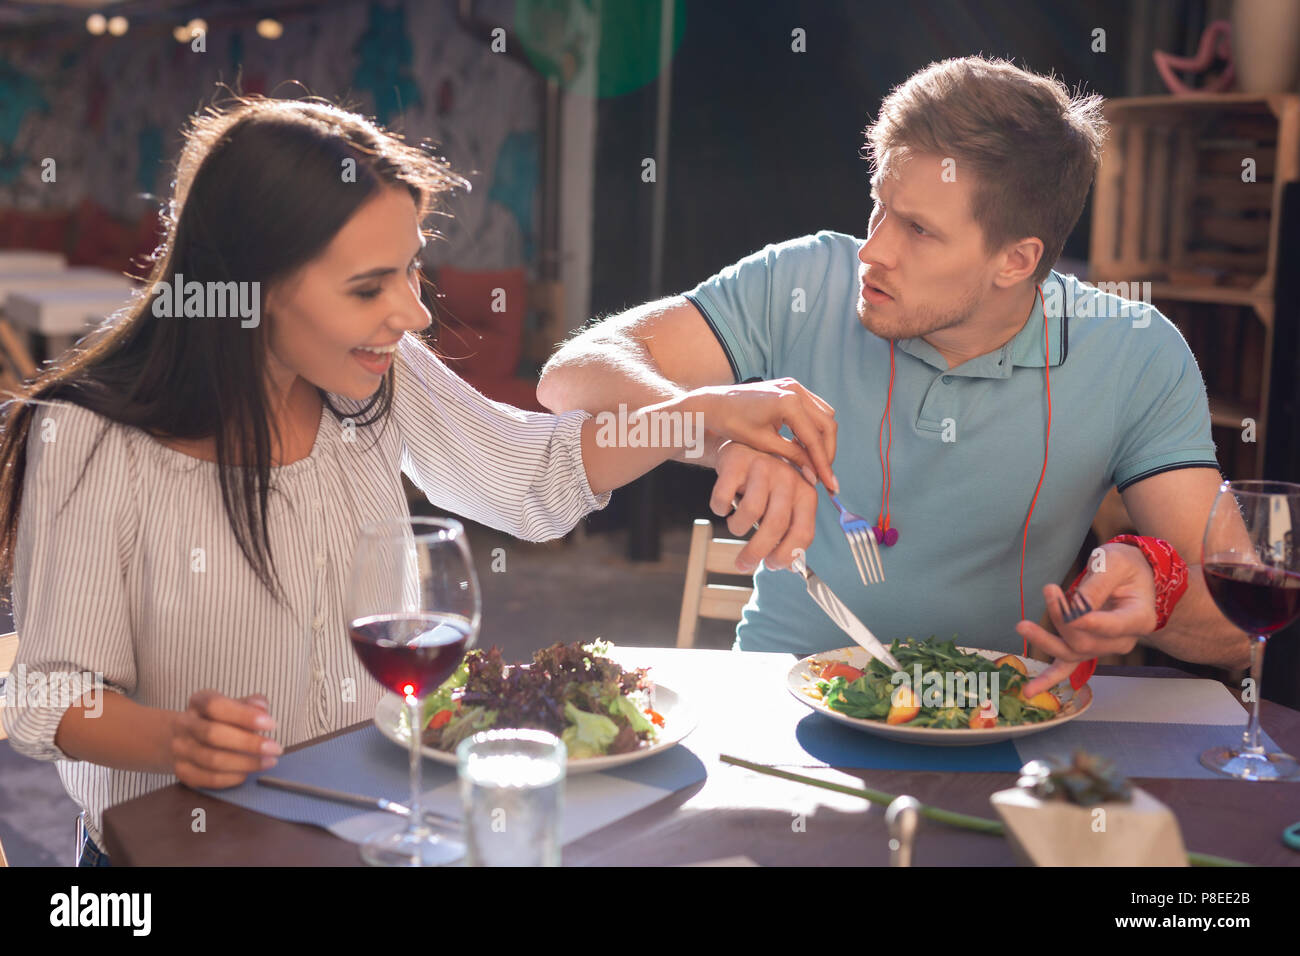 Beaming woman having desire trying some salad of her man - Stock Image